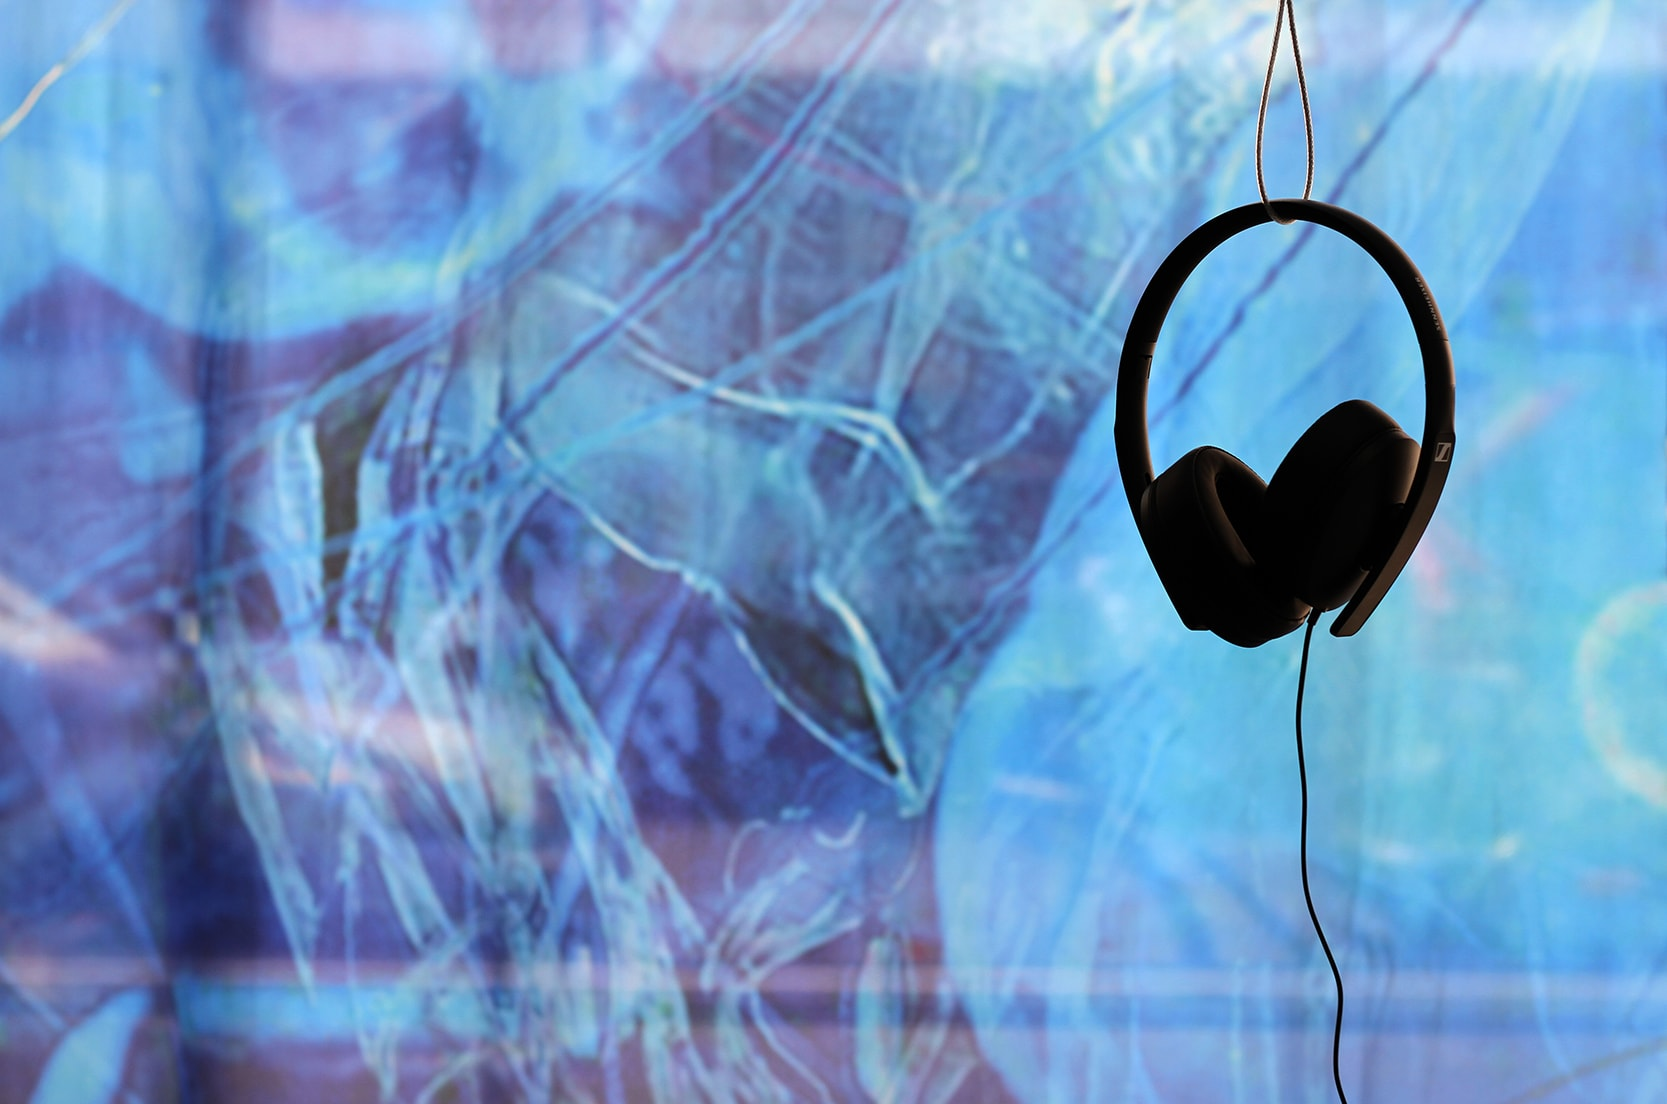 Detail from Einen Riesigen Schwarm installation, close-up of textile banner and headphones for sound installation